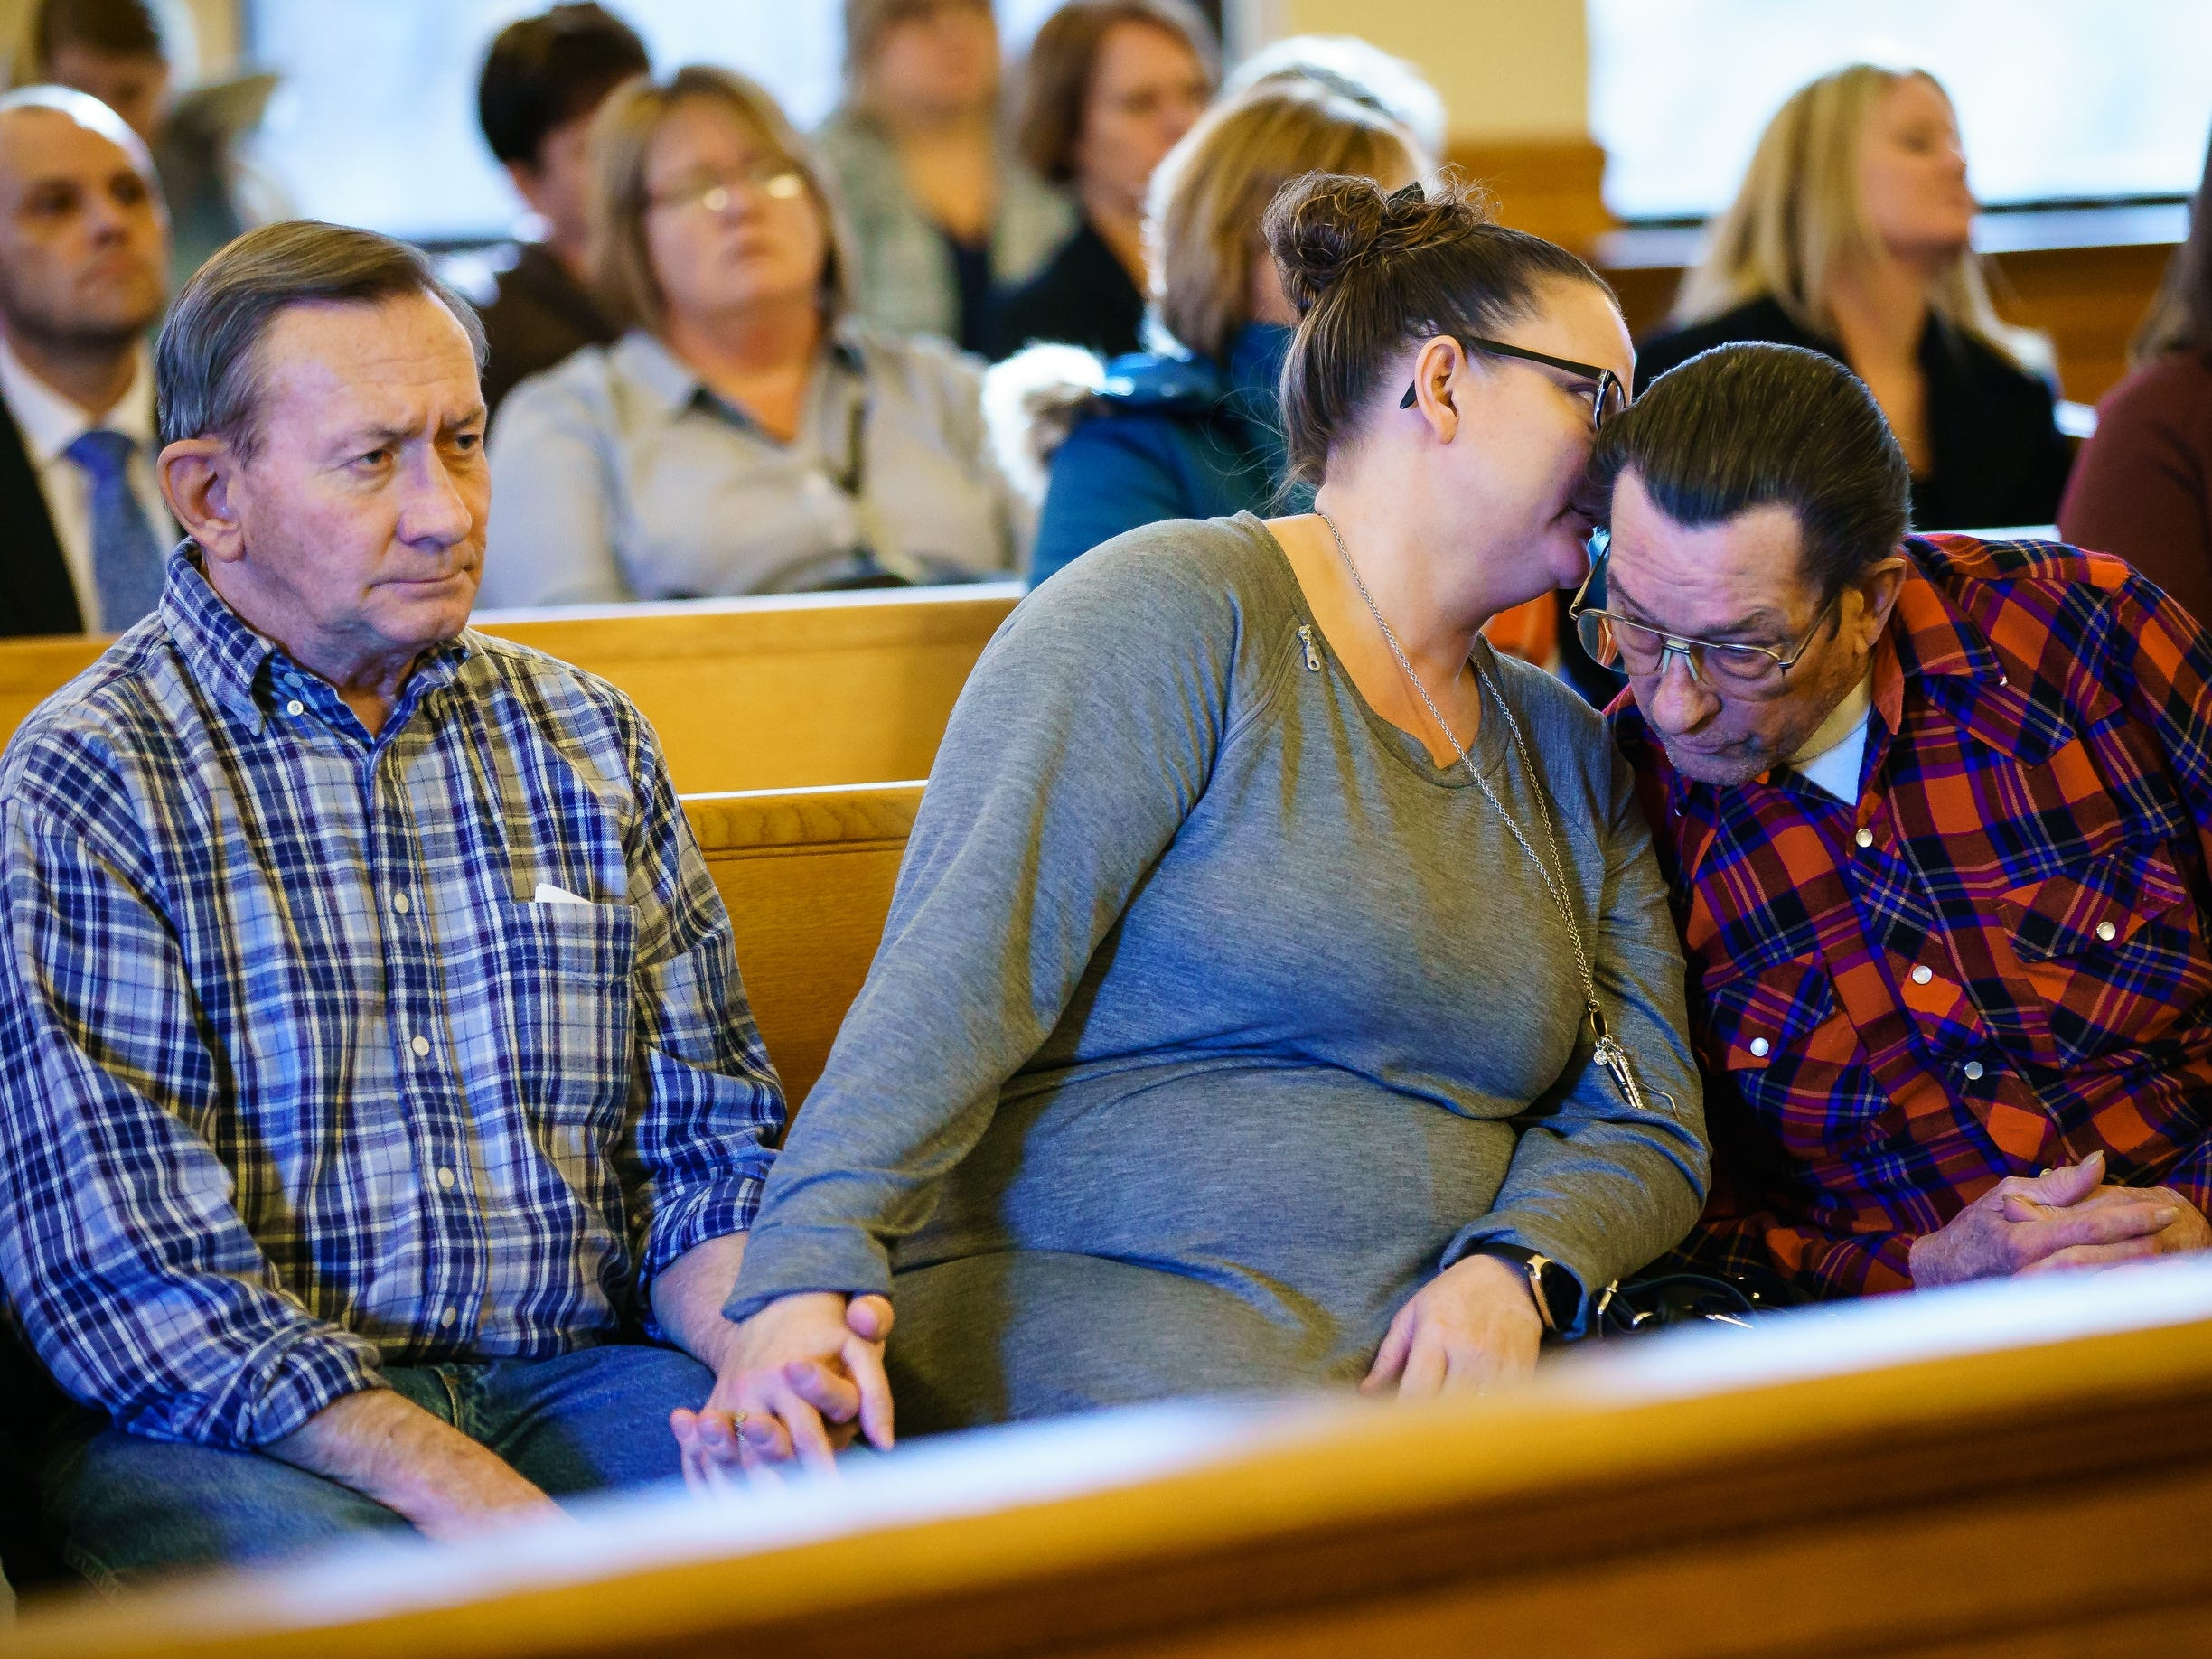 Sabrina Ray's biological Aunt, Nicole and Uncle, Pat, listen and talk to her biological grandfather Eugene Busch as Misty Ray pleas guilty to three counts of kidnapping during a hearing at the Dallas County Courthouse on Wednesday, Jan. 9, 2019, in Adel.